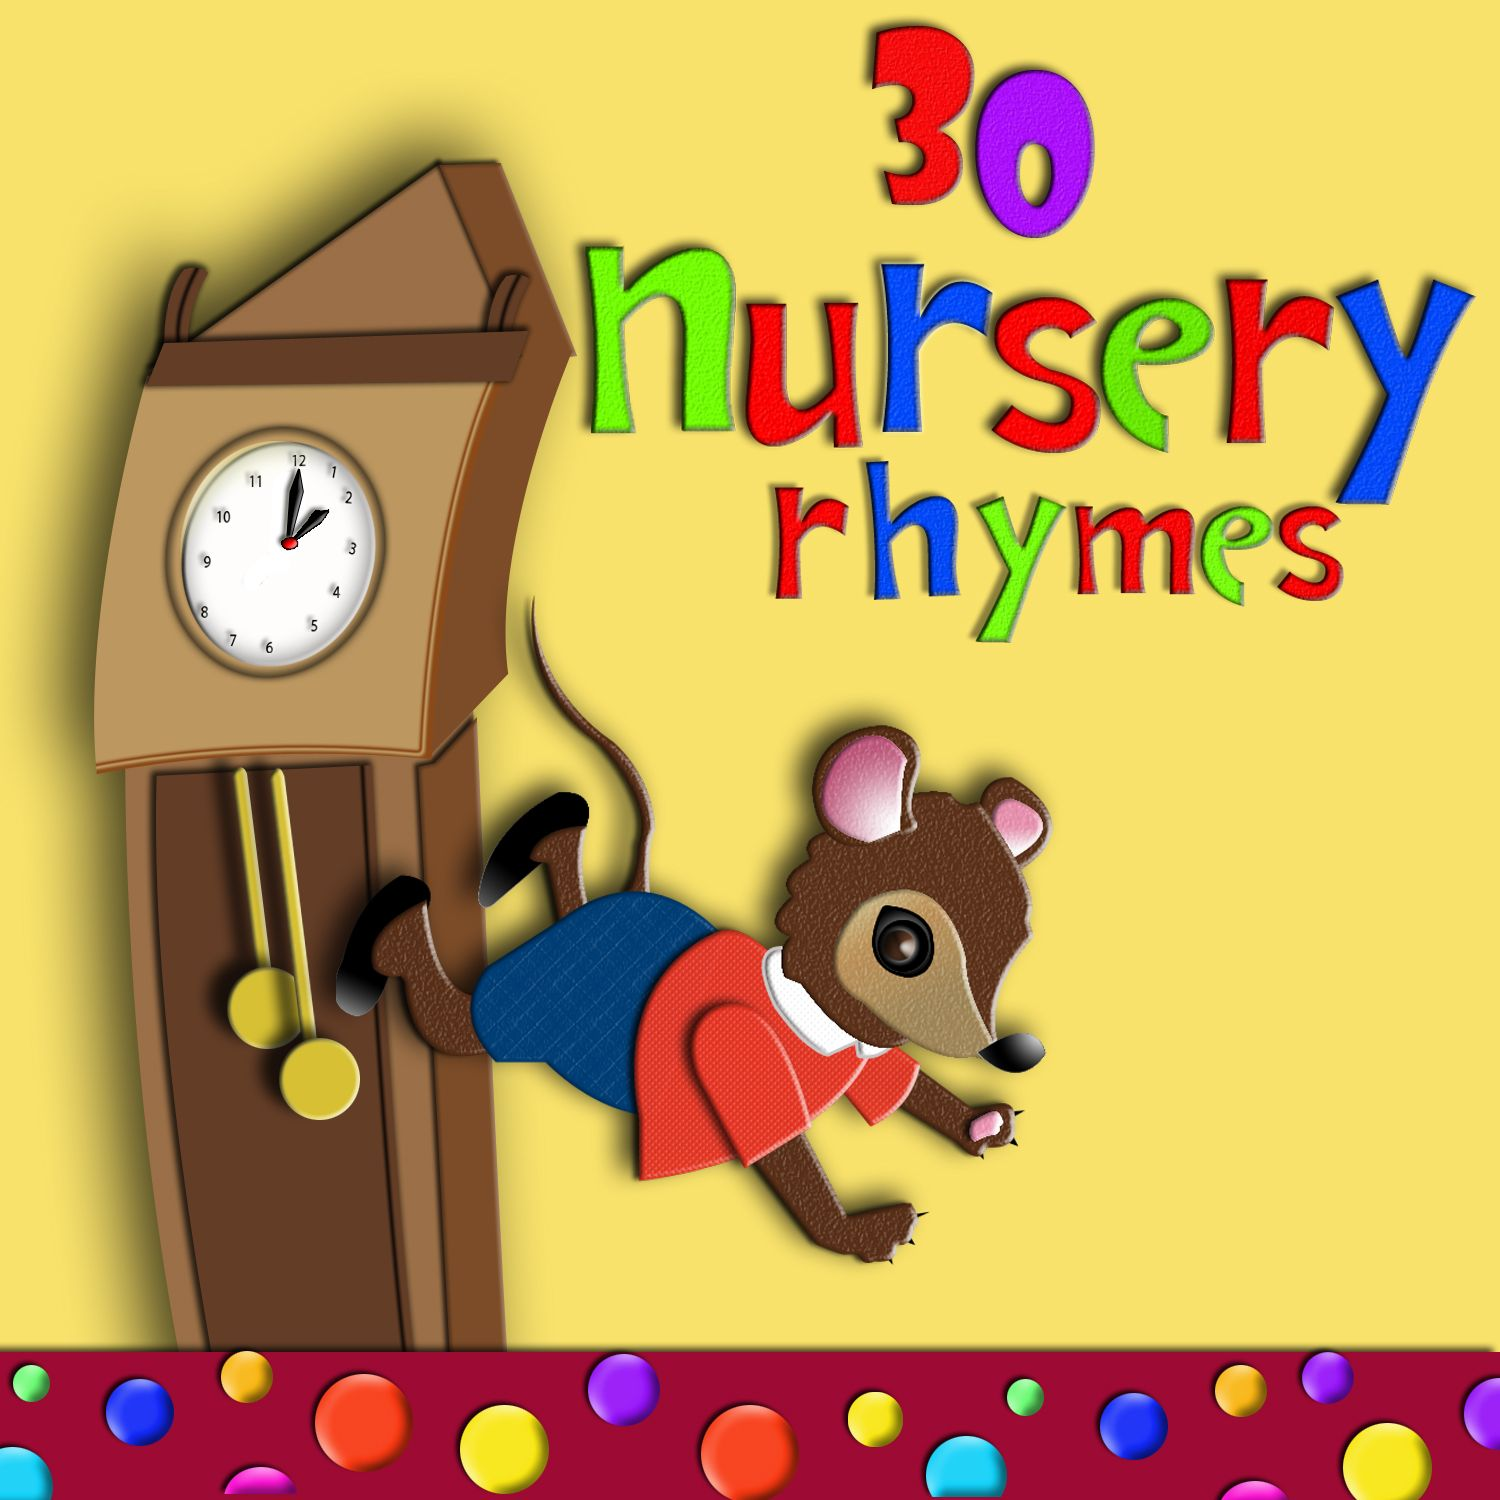 Baby Children Nursery Rhyme Song 30 Simple And Easy Nursery Rhyme Songs For Preschoolers